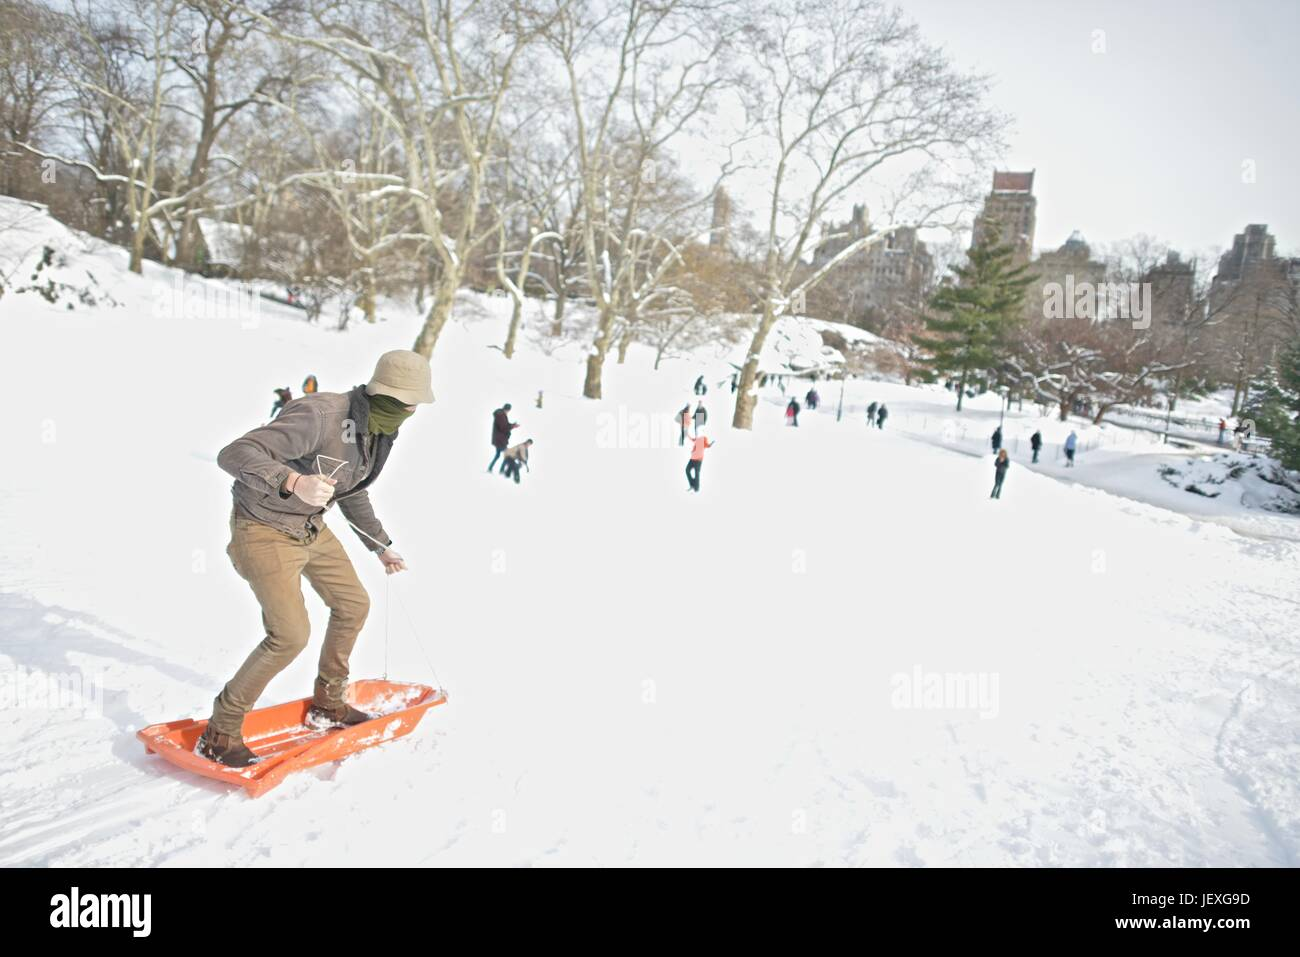 Disney actor, Cole Sprouse, sleds down a slope in Central Park in the aftermath of winter storm Juno. - Stock Image